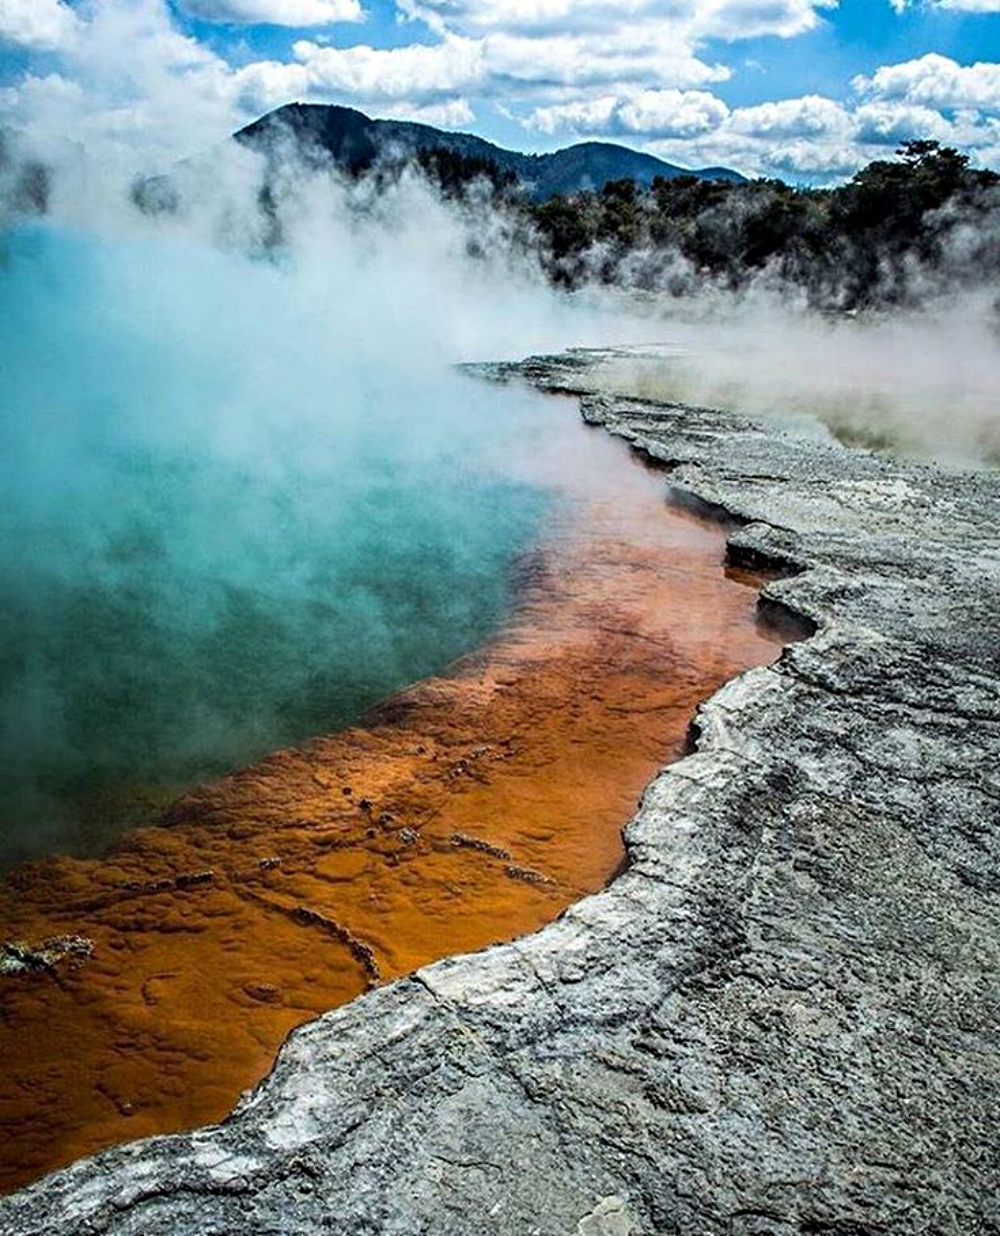 Luxury Travel: Outstanding Places to Visit At Least Once in a Lifetime outstanding places to visit Luxury Travel: Outstanding Places to Visit At Least Once in a Lifetime 5 Outstanding Places to Visit At Least Once in a Lifetime Champagne pool